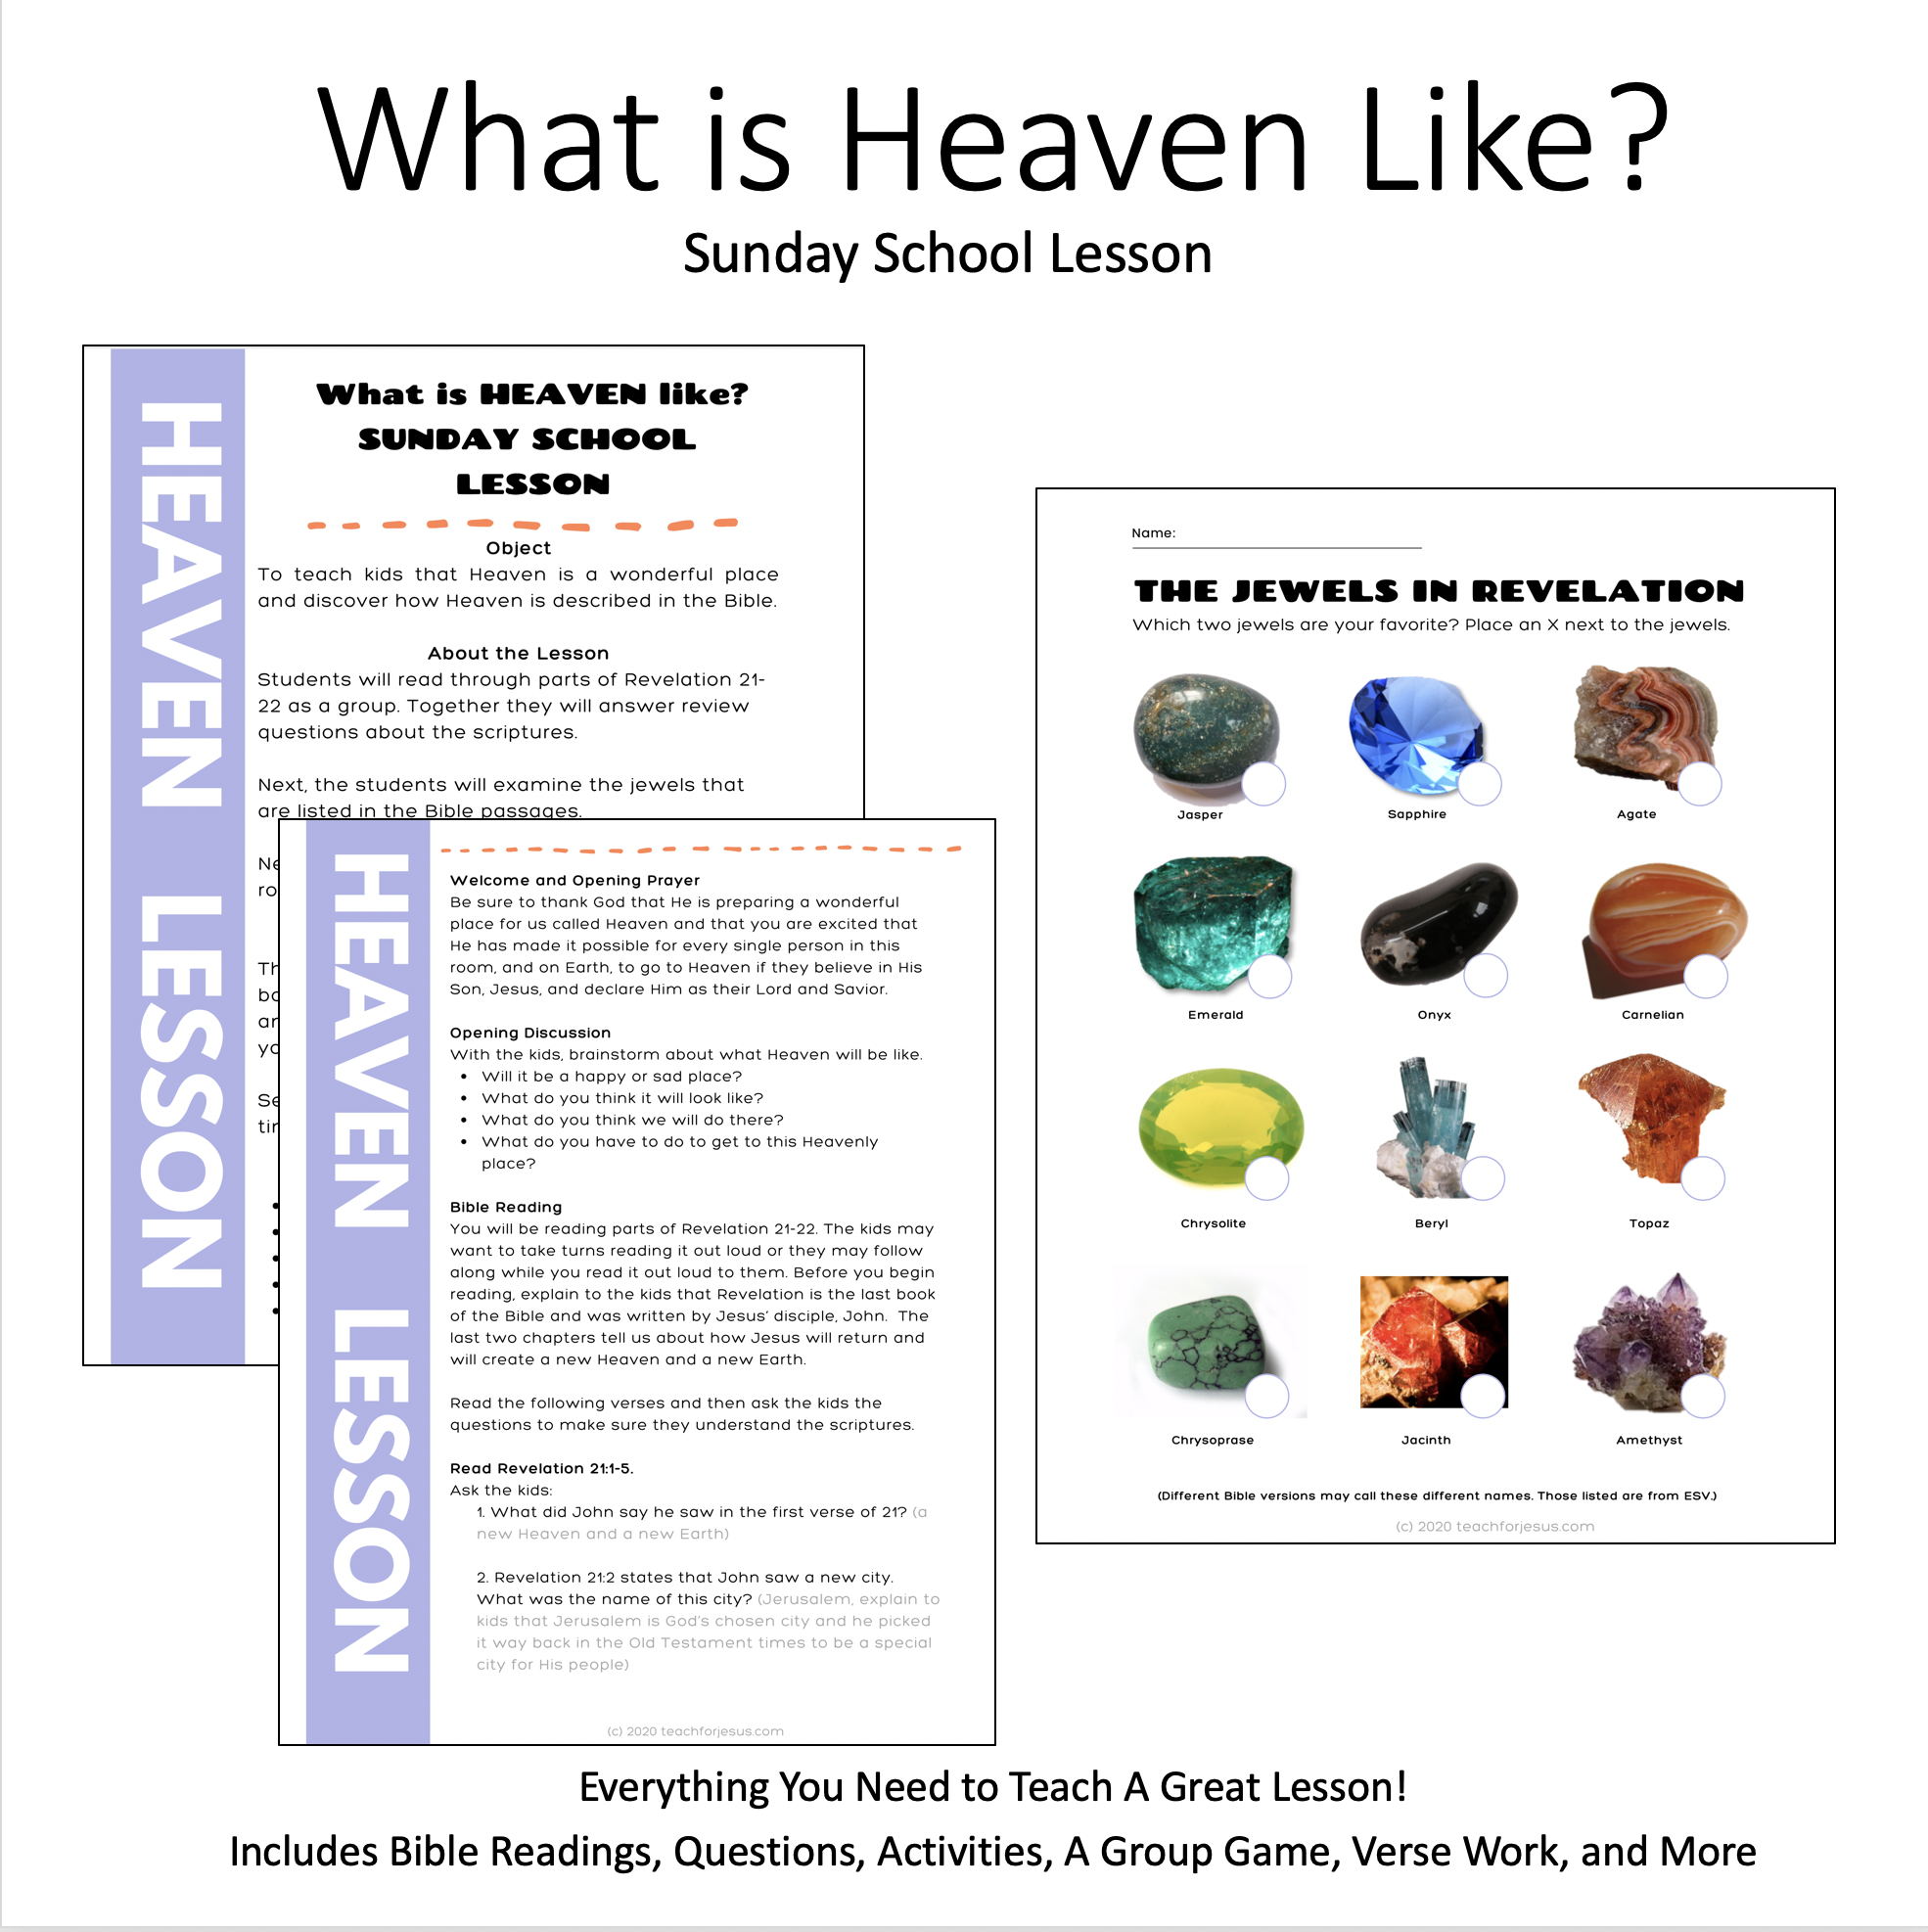 sunday-school-lesson-about-heaven-1.png